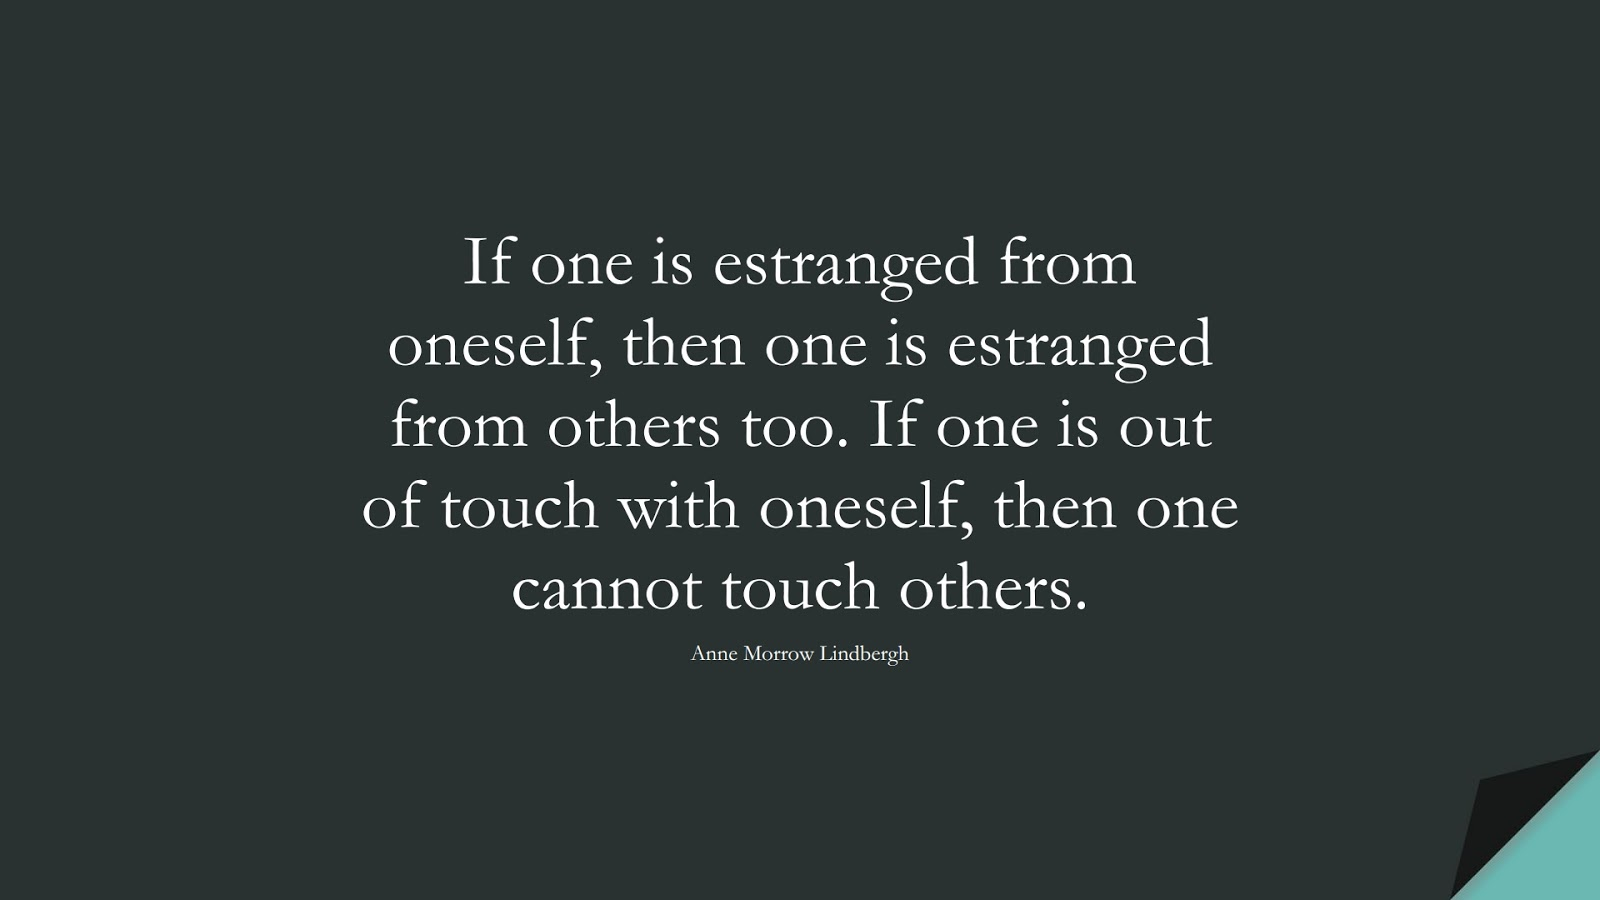 If one is estranged from oneself, then one is estranged from others too. If one is out of touch with oneself, then one cannot touch others. (Anne Morrow Lindbergh);  #FriendshipQuotes